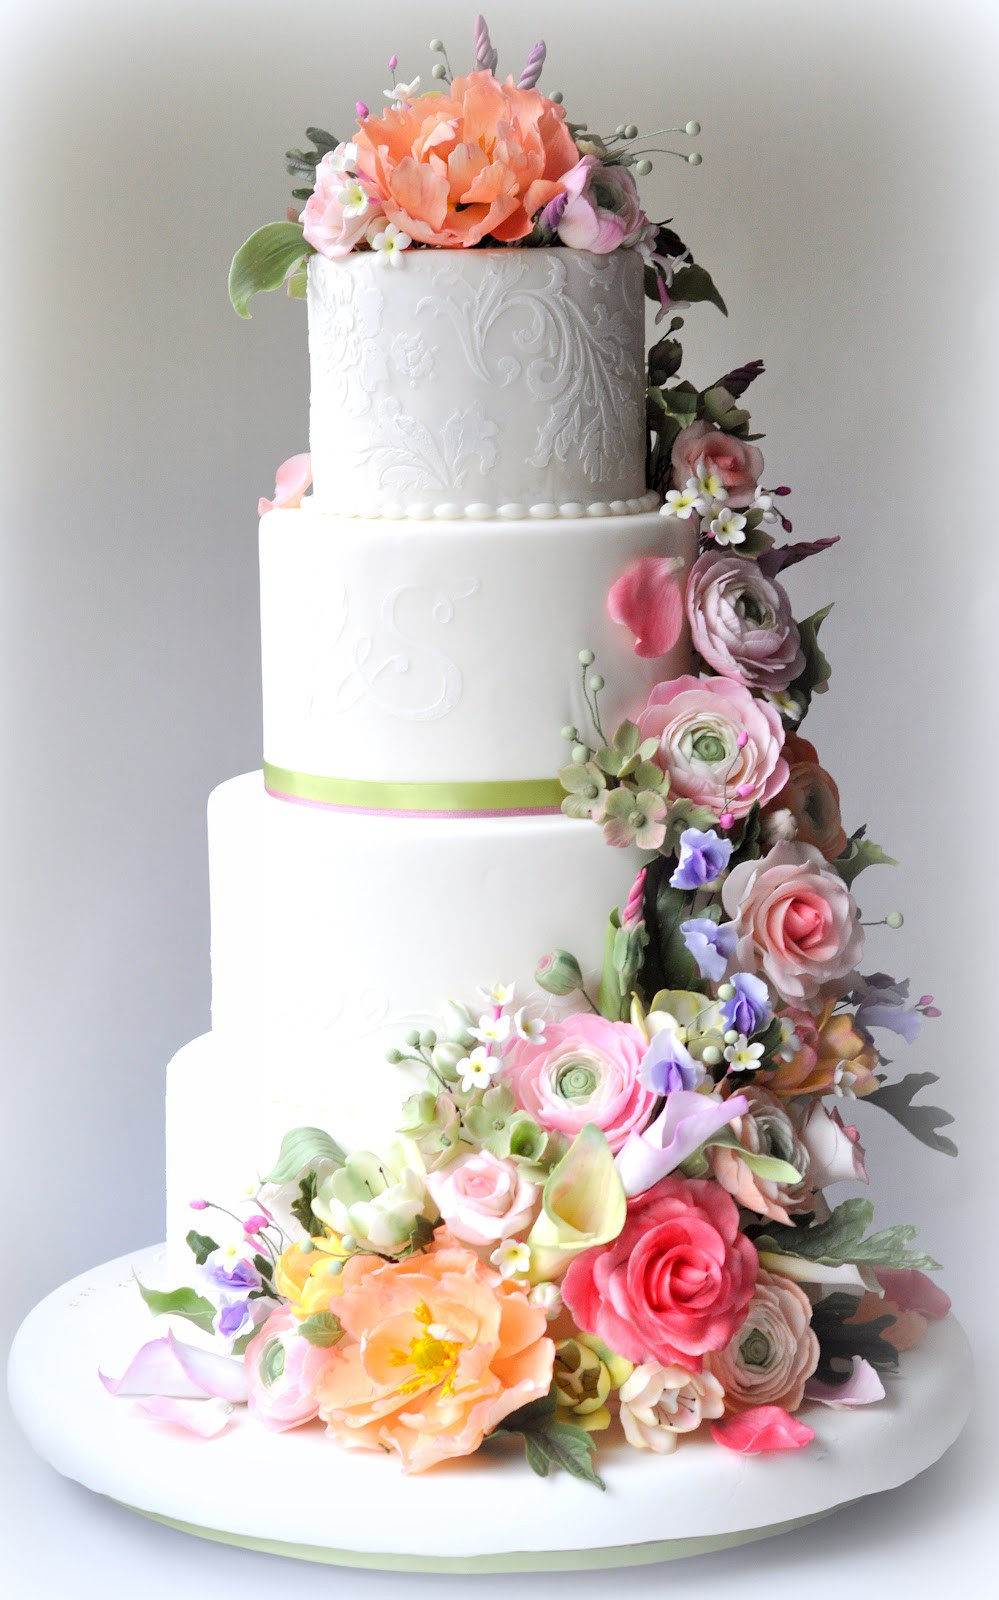 Wedding Cakes Flower  7 Gorgeous Reasons to Fall in Love With Spring Weddings